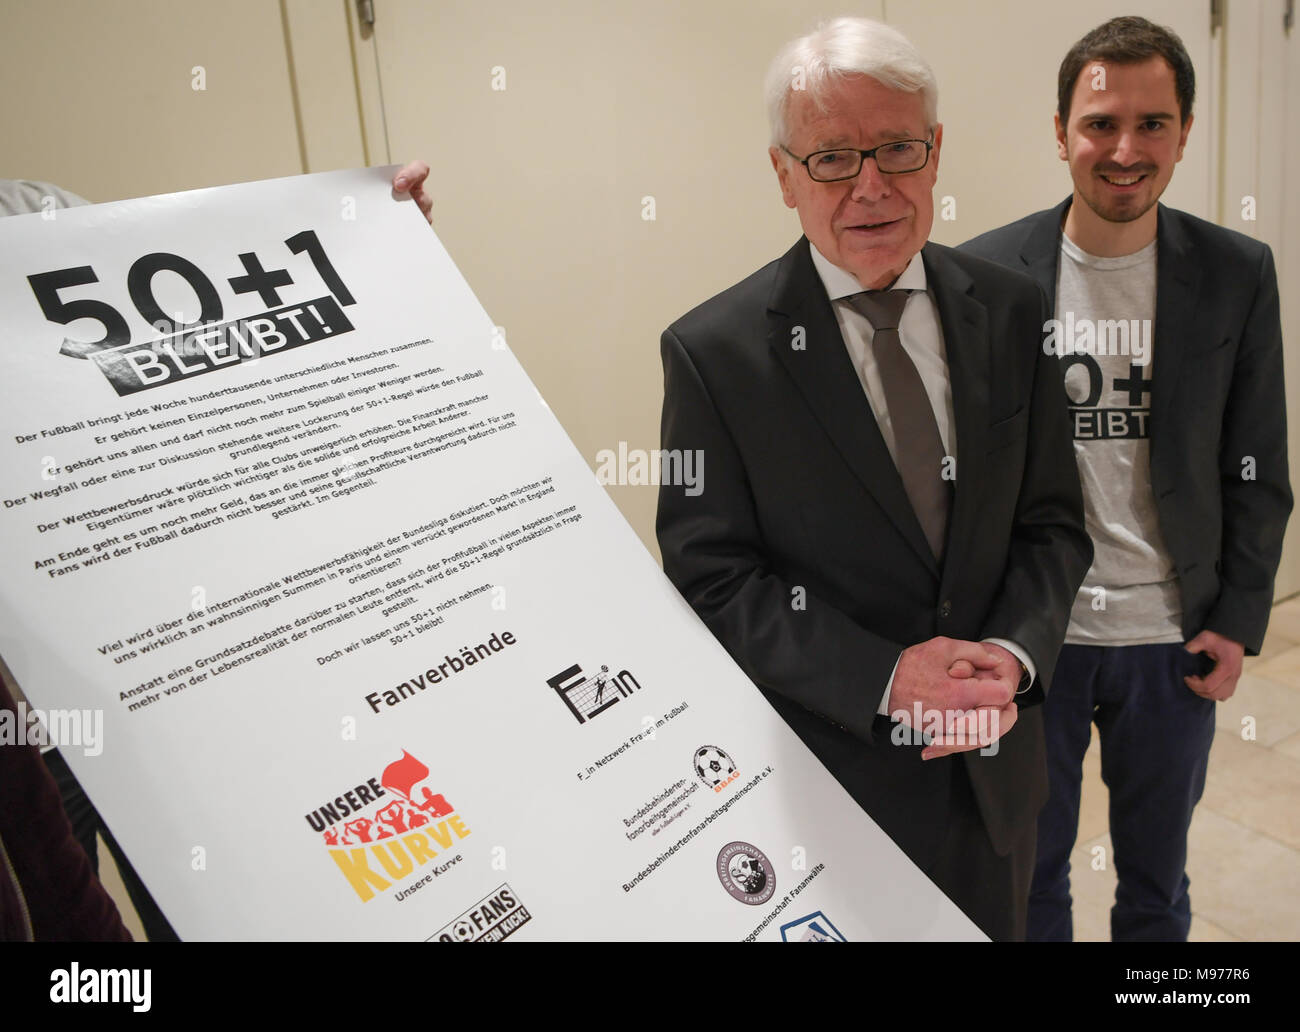 22 March 2018, Germany, Frankfurt/Main: Reinhard Rauball (l), President of the German Soccer League (DFL), attends a members' assembly to present the 50+1 rule. Photo: Arne Dedert/dpa - Stock Image